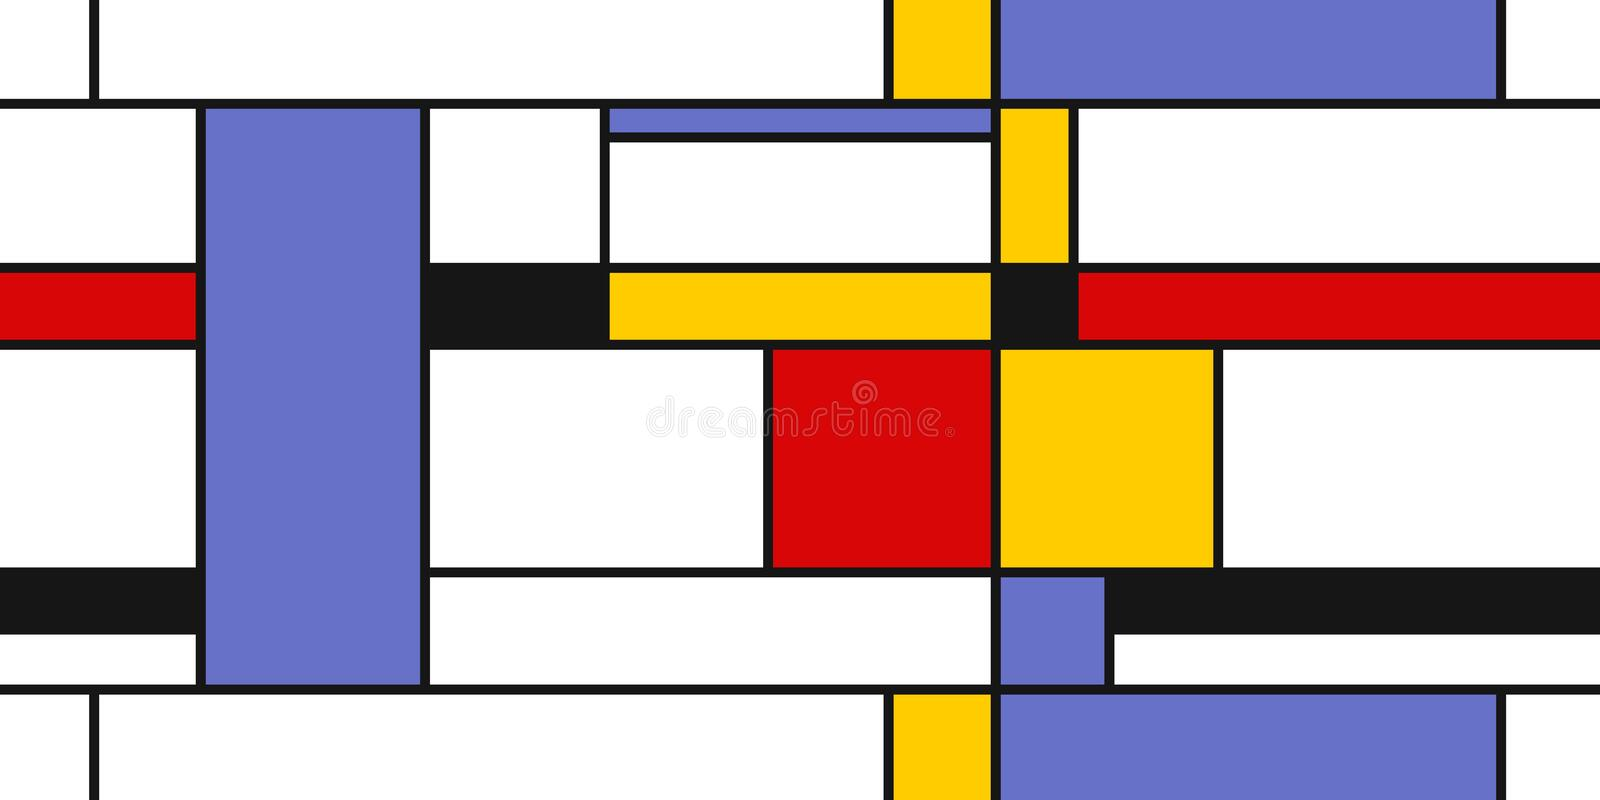 Mondrian style art. Seamless modern geometric background. Textile or gift paper design stock illustration